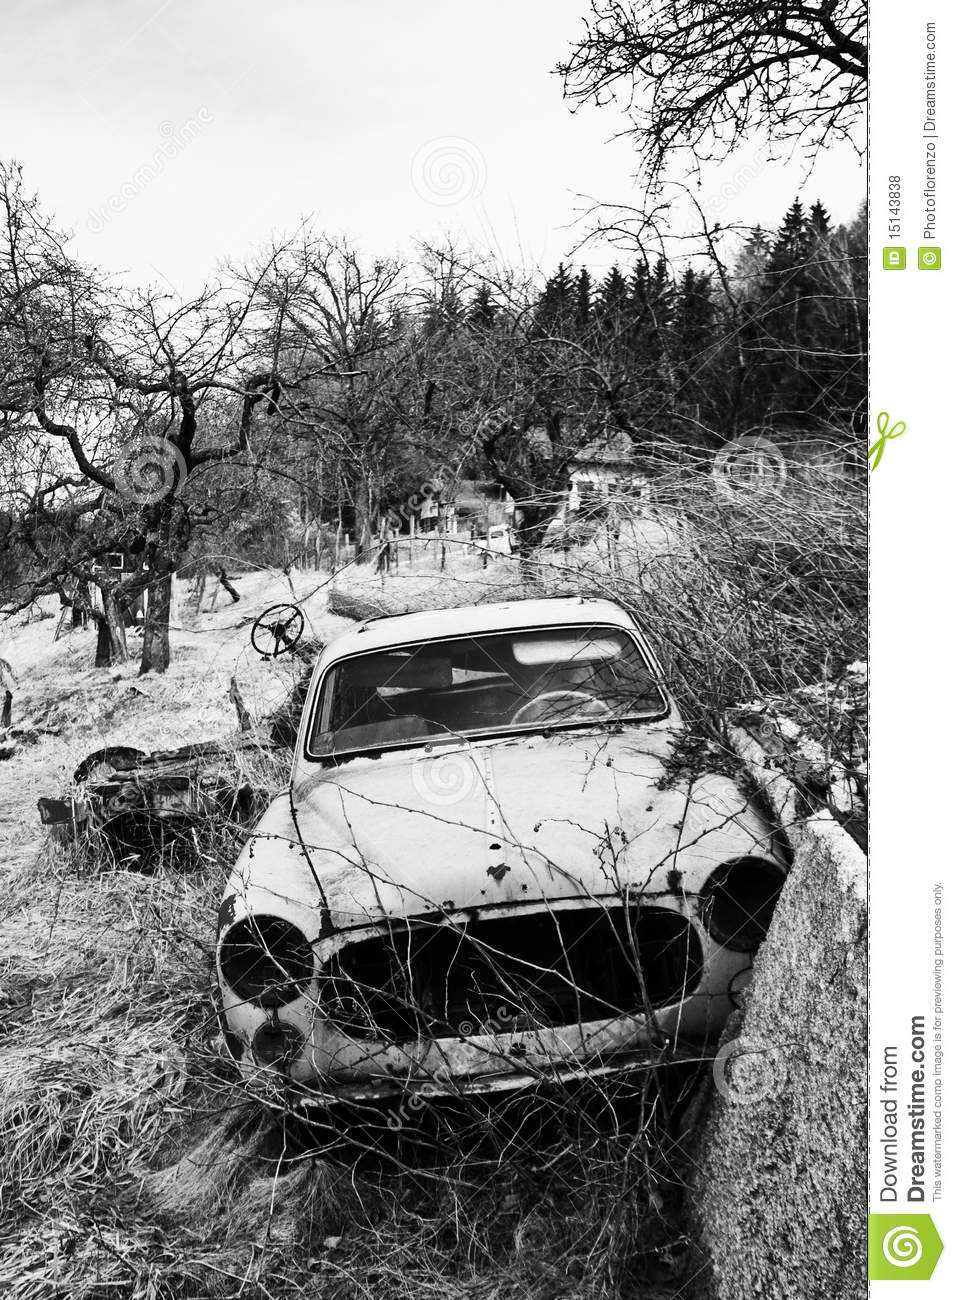 Broken Car In Black And White Royalty Free Stock Photos   Image